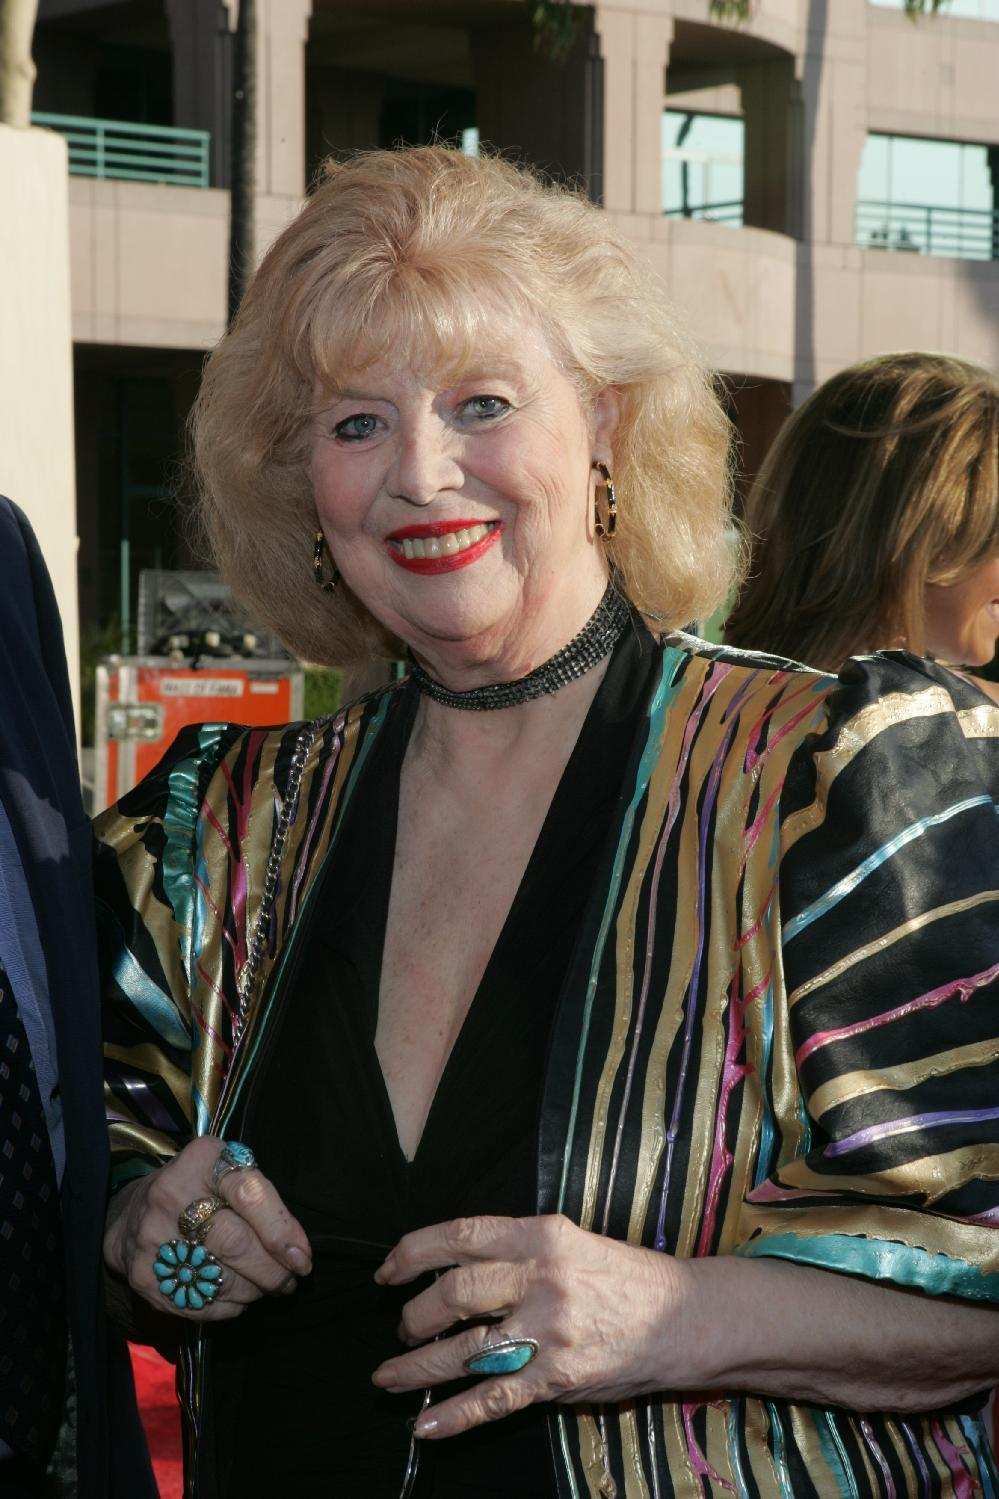 "This June 26, 2004 photo provided by The Academy of Television Arts & Sciences shows actress Sheila MacRae arriving at the 16th Hall of Fame induction ceremony in Los Angeles. The veteran stage, film and TV performer, MacRae, best known for playing Alice Kramden in the 1960s re-creation of ""The Honeymooners"" has died. MacRae's granddaughter, Allison Mullavey, on Friday, March 7, 2014, told The Associated Press that the actress died at age, 92, Thursday, at the Lillian Booth Actors Home in Englewood, New Jersey. (AP Photo/Academy of Television Arts & Sciences, Mathew Imaging/Filmmagic)"